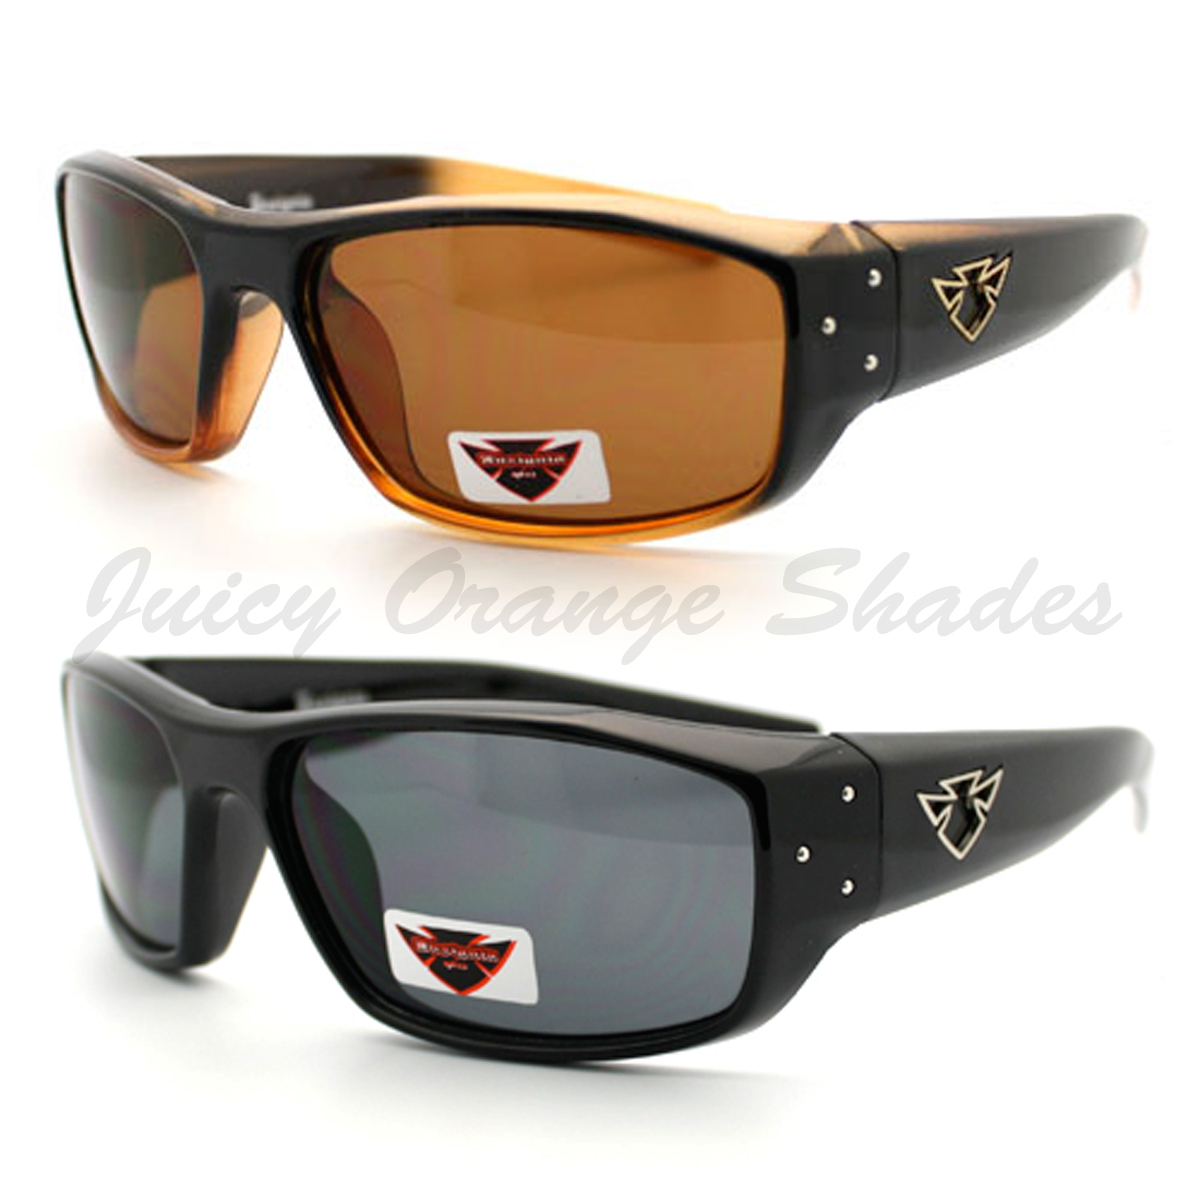 MENS Designer Sunglasses RECTANGULAR Plastic Frame SKATE Shades More Colors